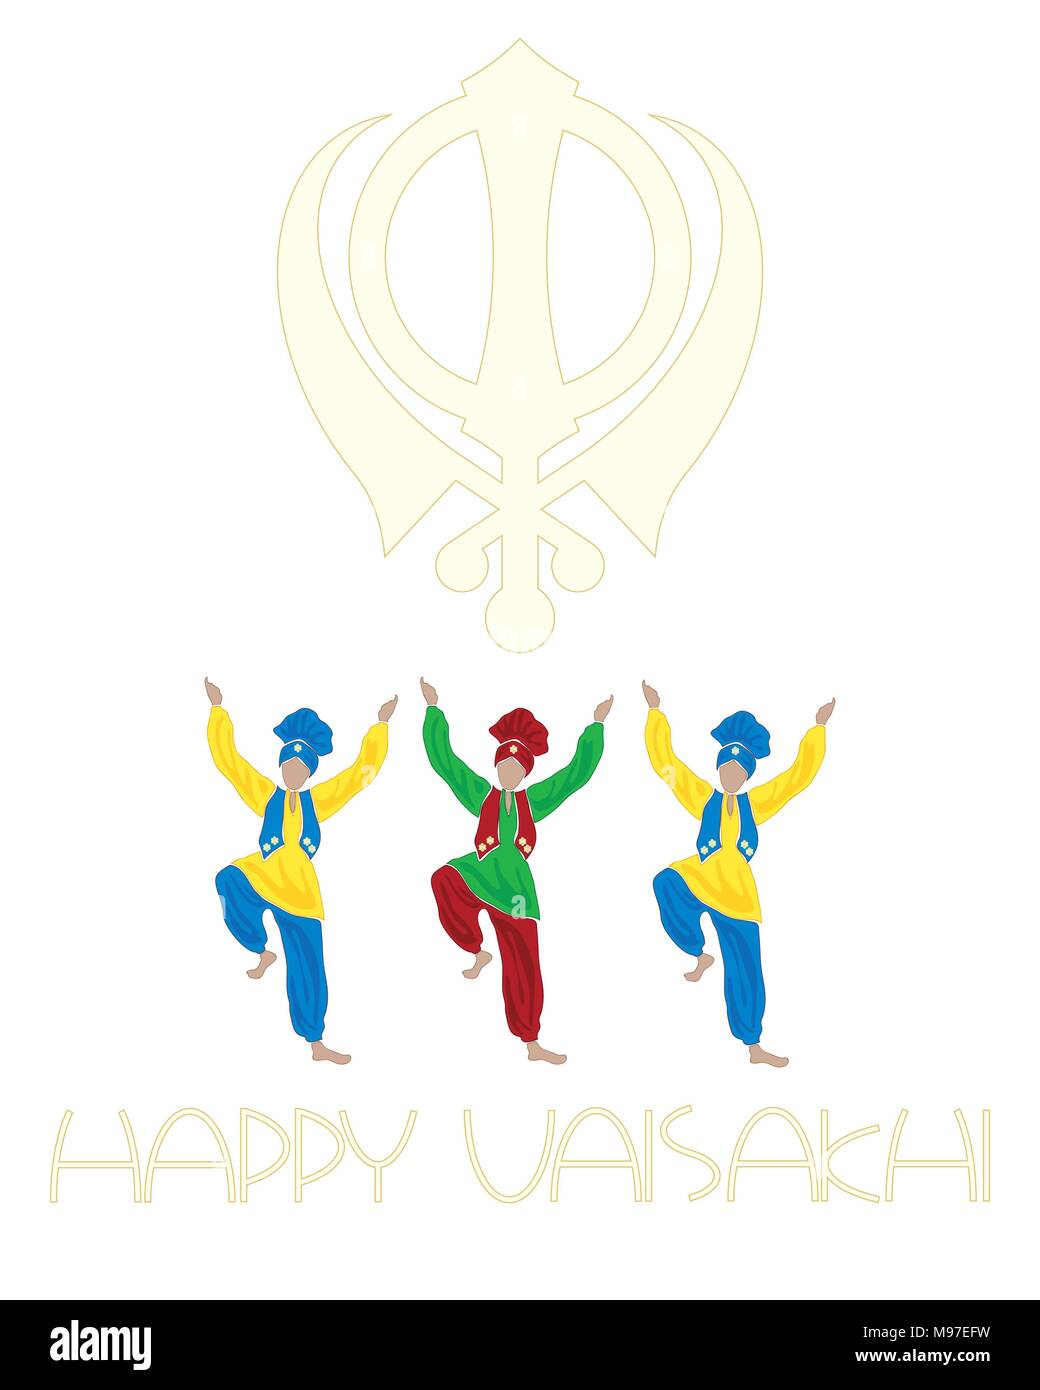 a vector illustration in eps 10 format of a Sikh Vaisakhi greeting card with dancers symbol and the words Happy Vaisakhi on a white background - Stock Vector